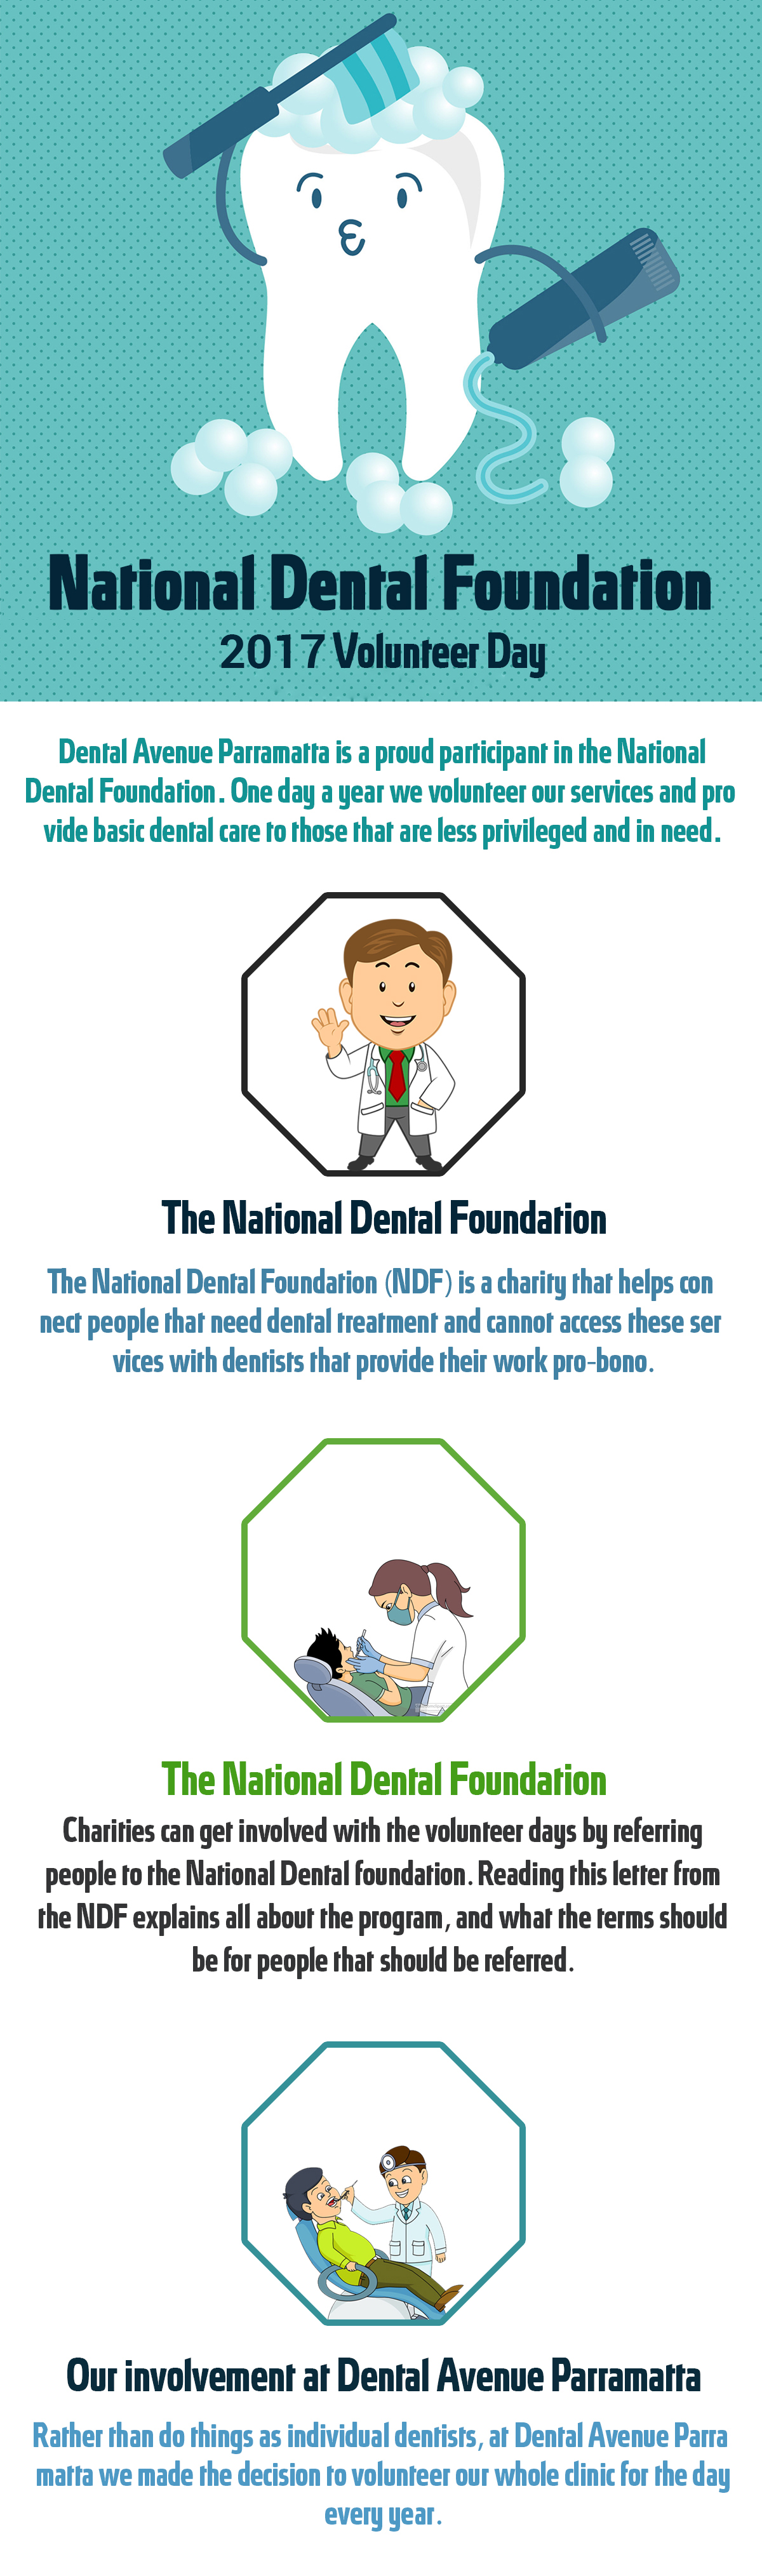 National Dental Foundation 2017 Volunteer Day